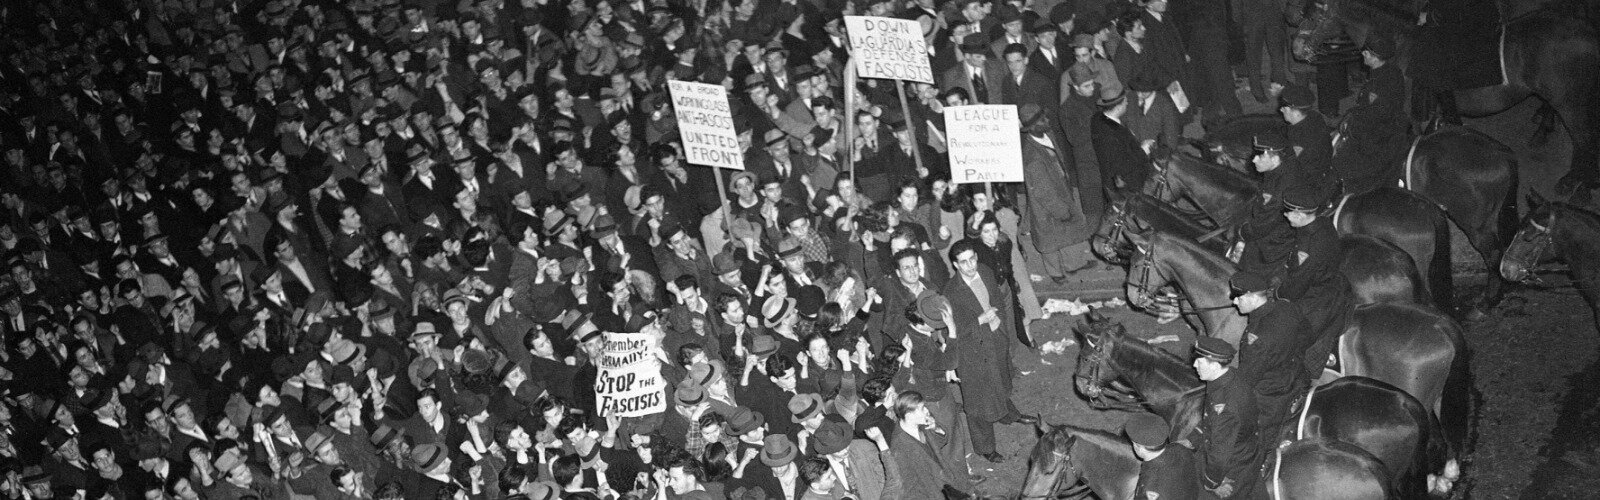 In 1939, New York's mounted police form a solid line outside Madison Square Garden to hold in a crowd that had packed the streets around the venue where the fascist German American Bund was holding a rally.